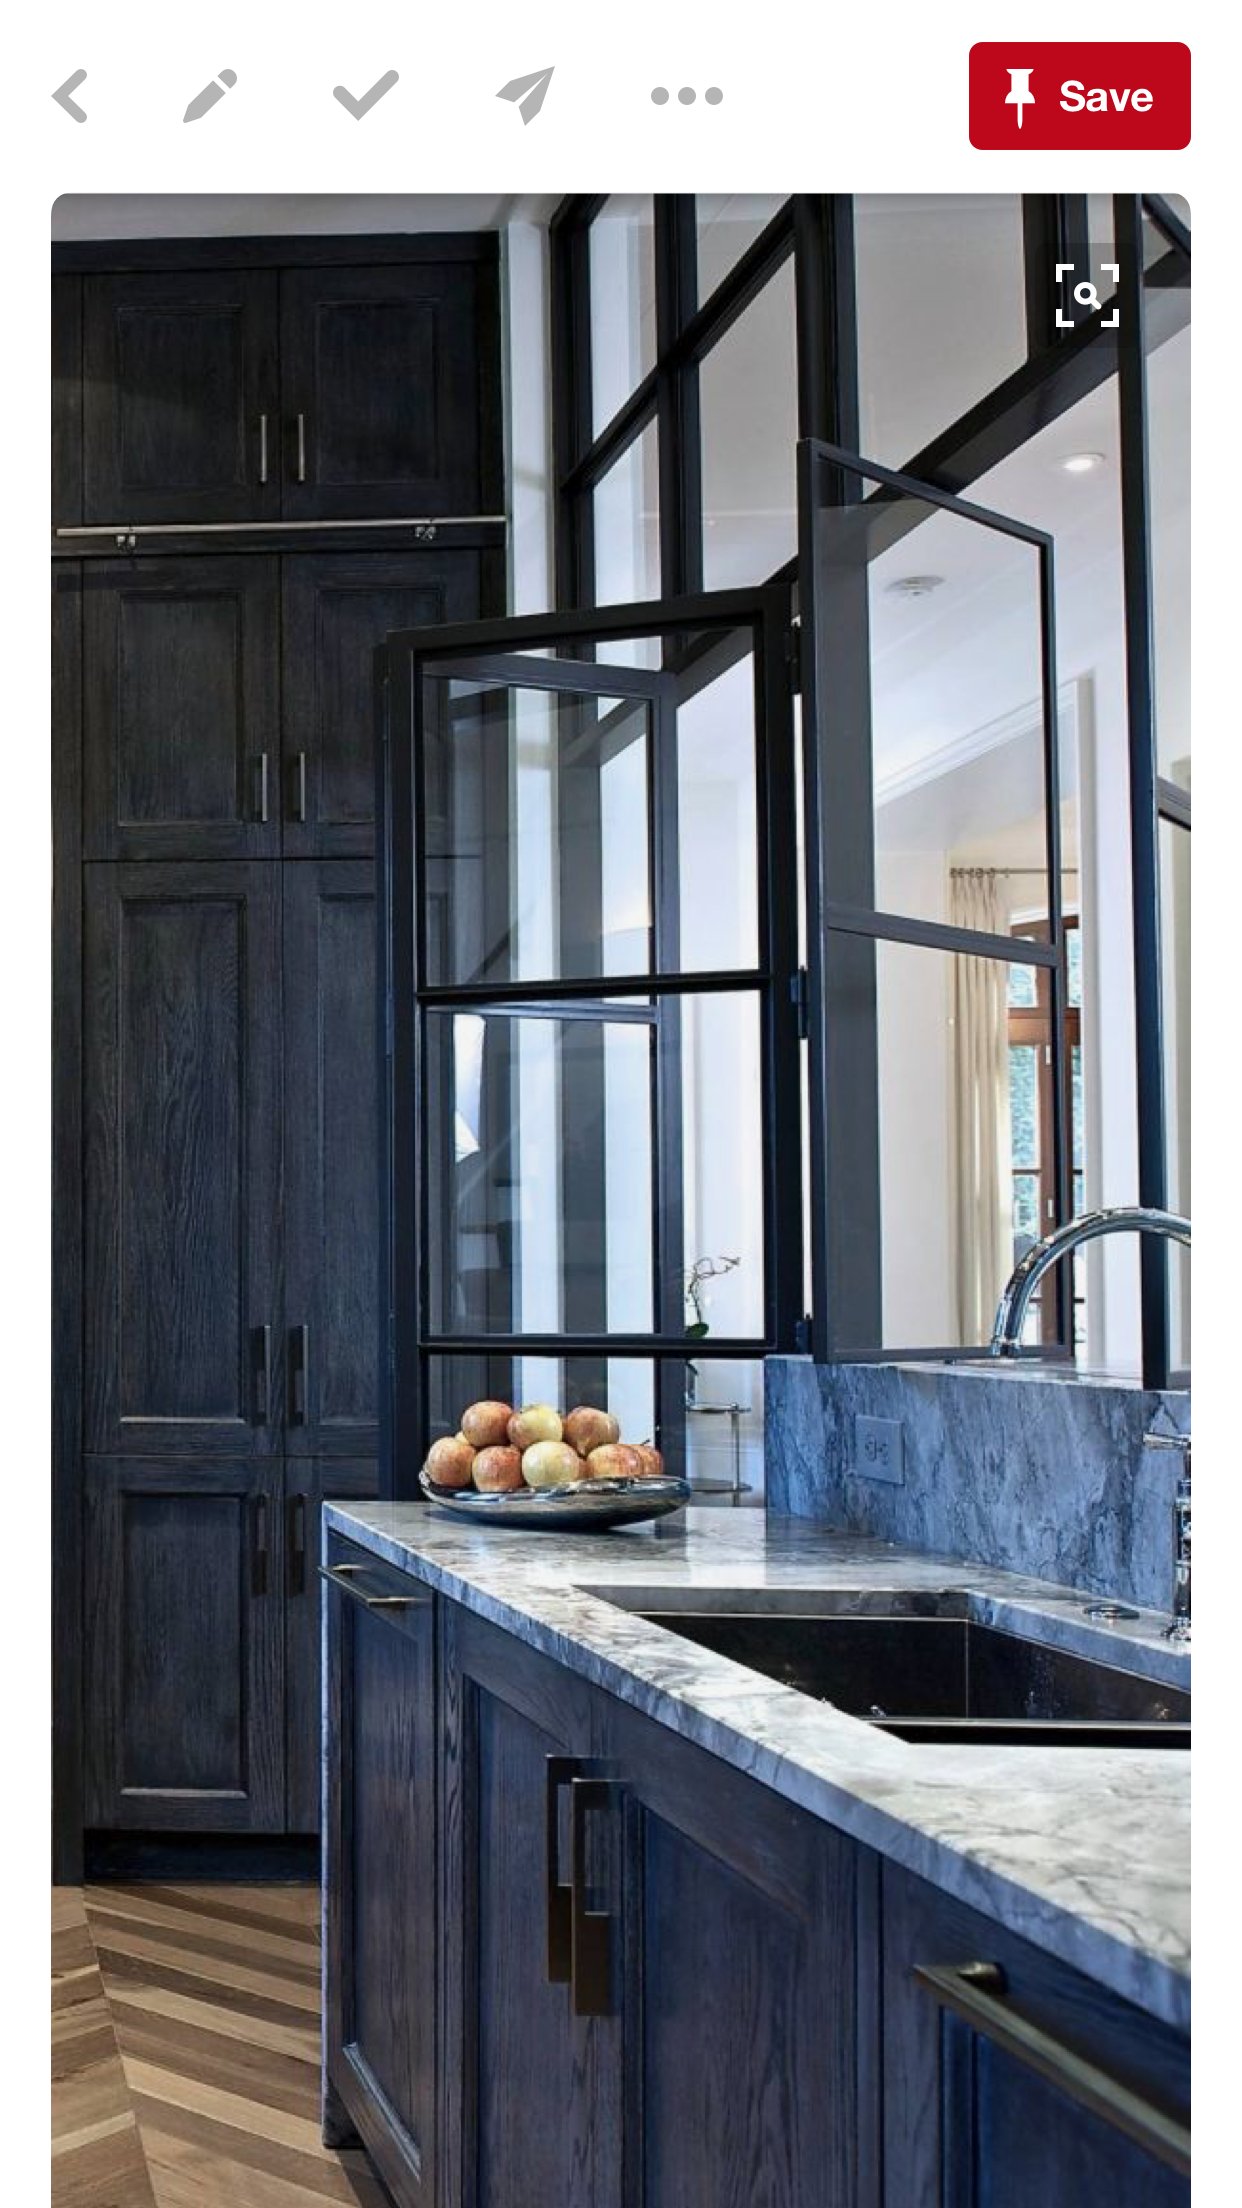 Black Cerused Oak Kitchen Cabinets With Iron Accents In